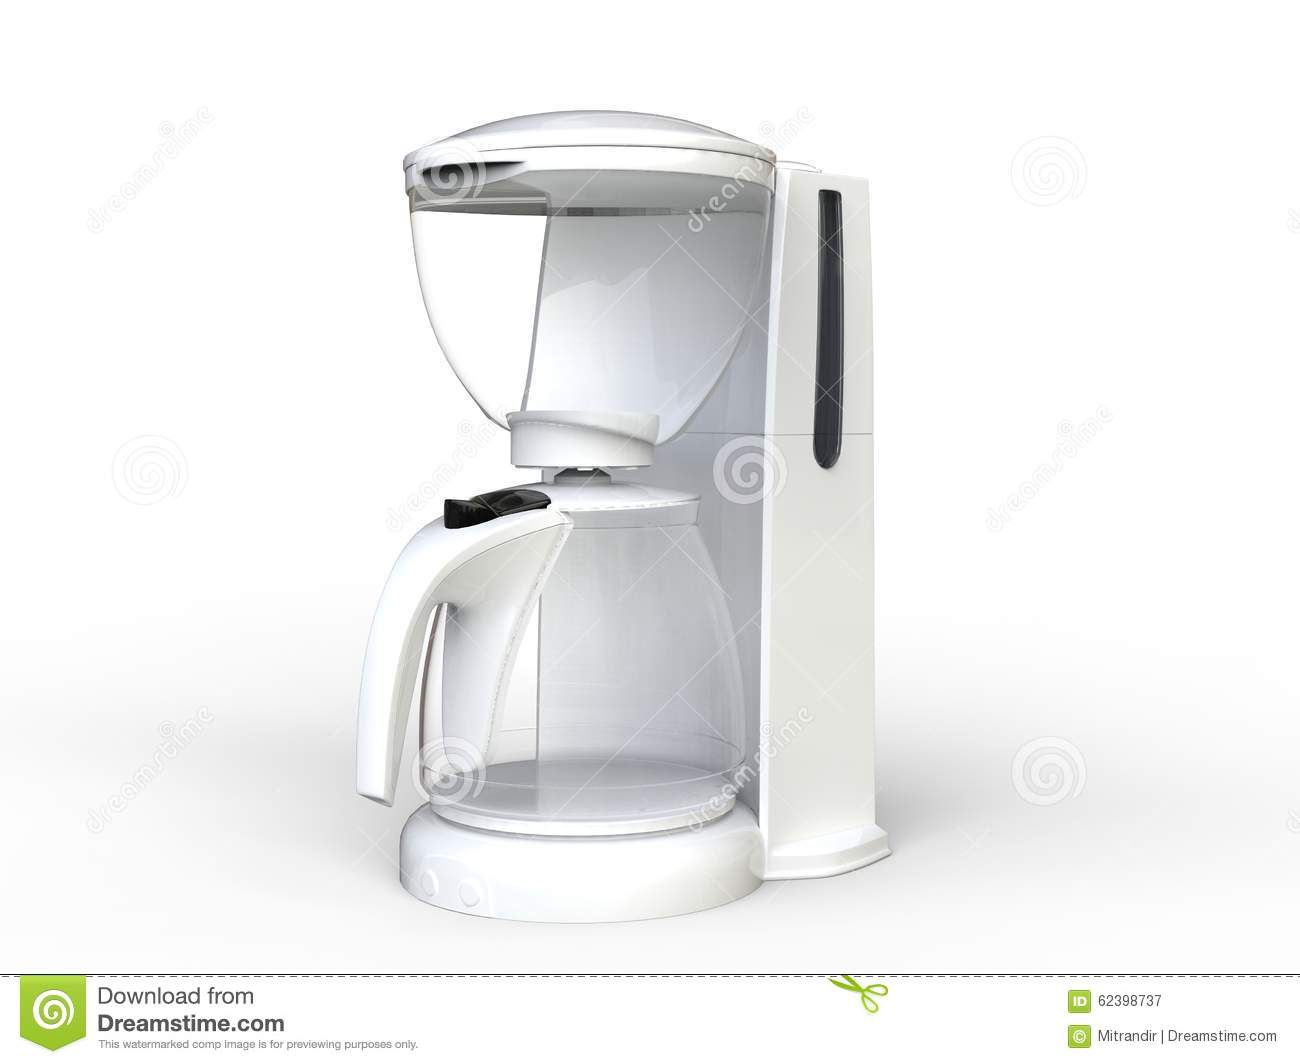 modern coffee maker royalty free stock images  image  - modern white coffee maker royalty free stock photography